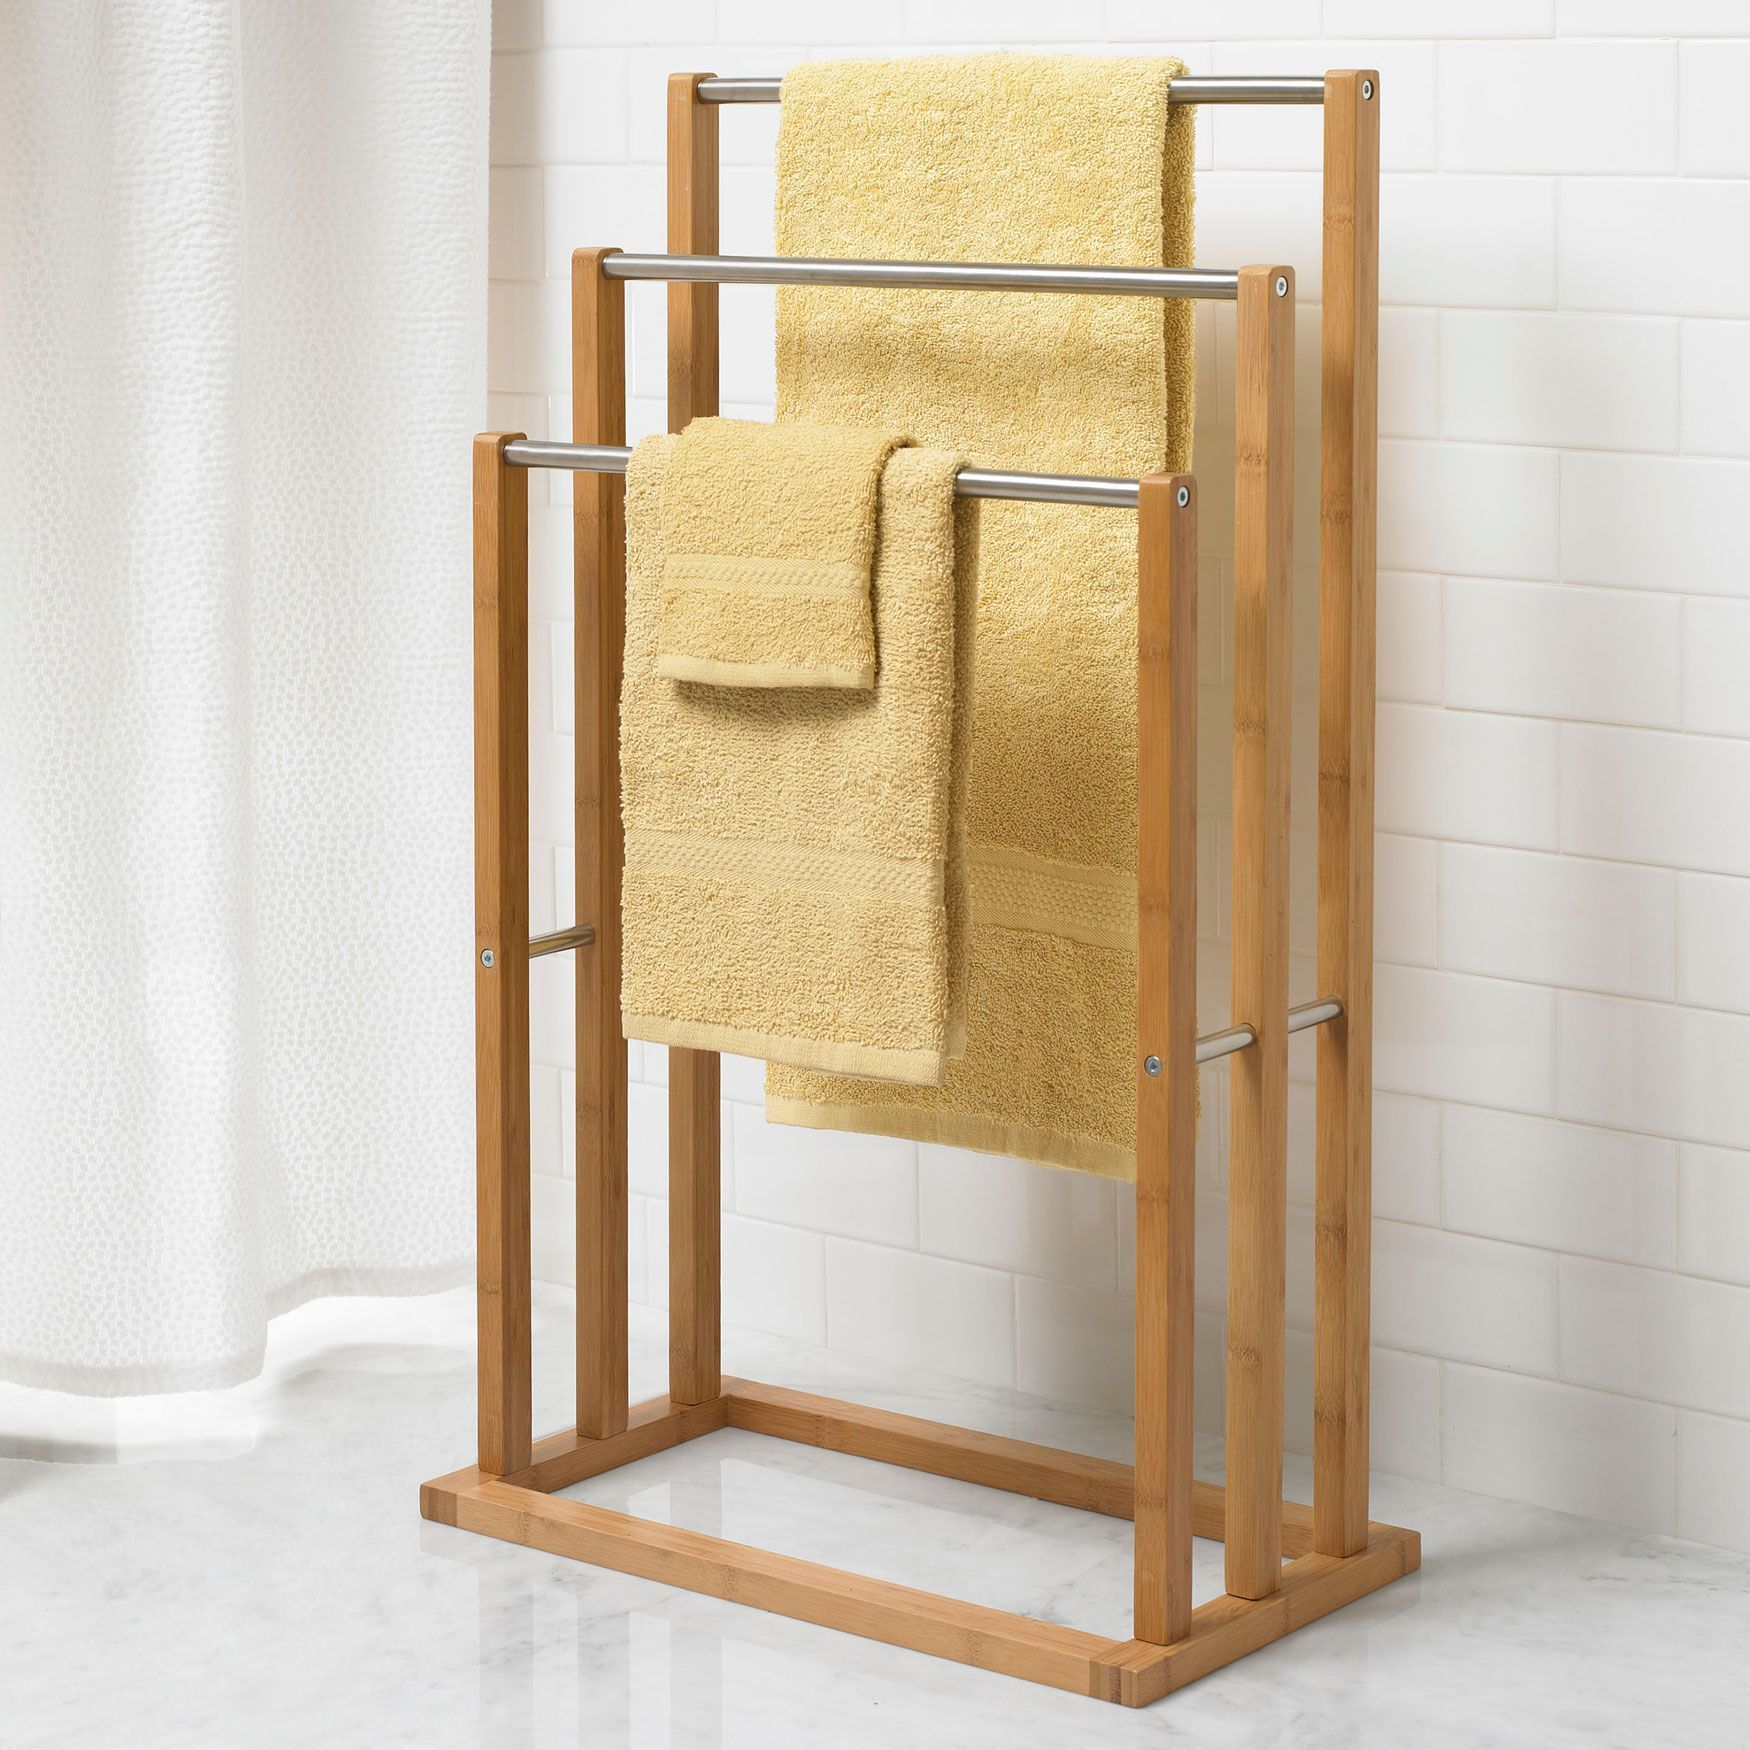 Bamboo 3-Tier Towel Rack | Shower Curtains & Accessories + Furniture ...